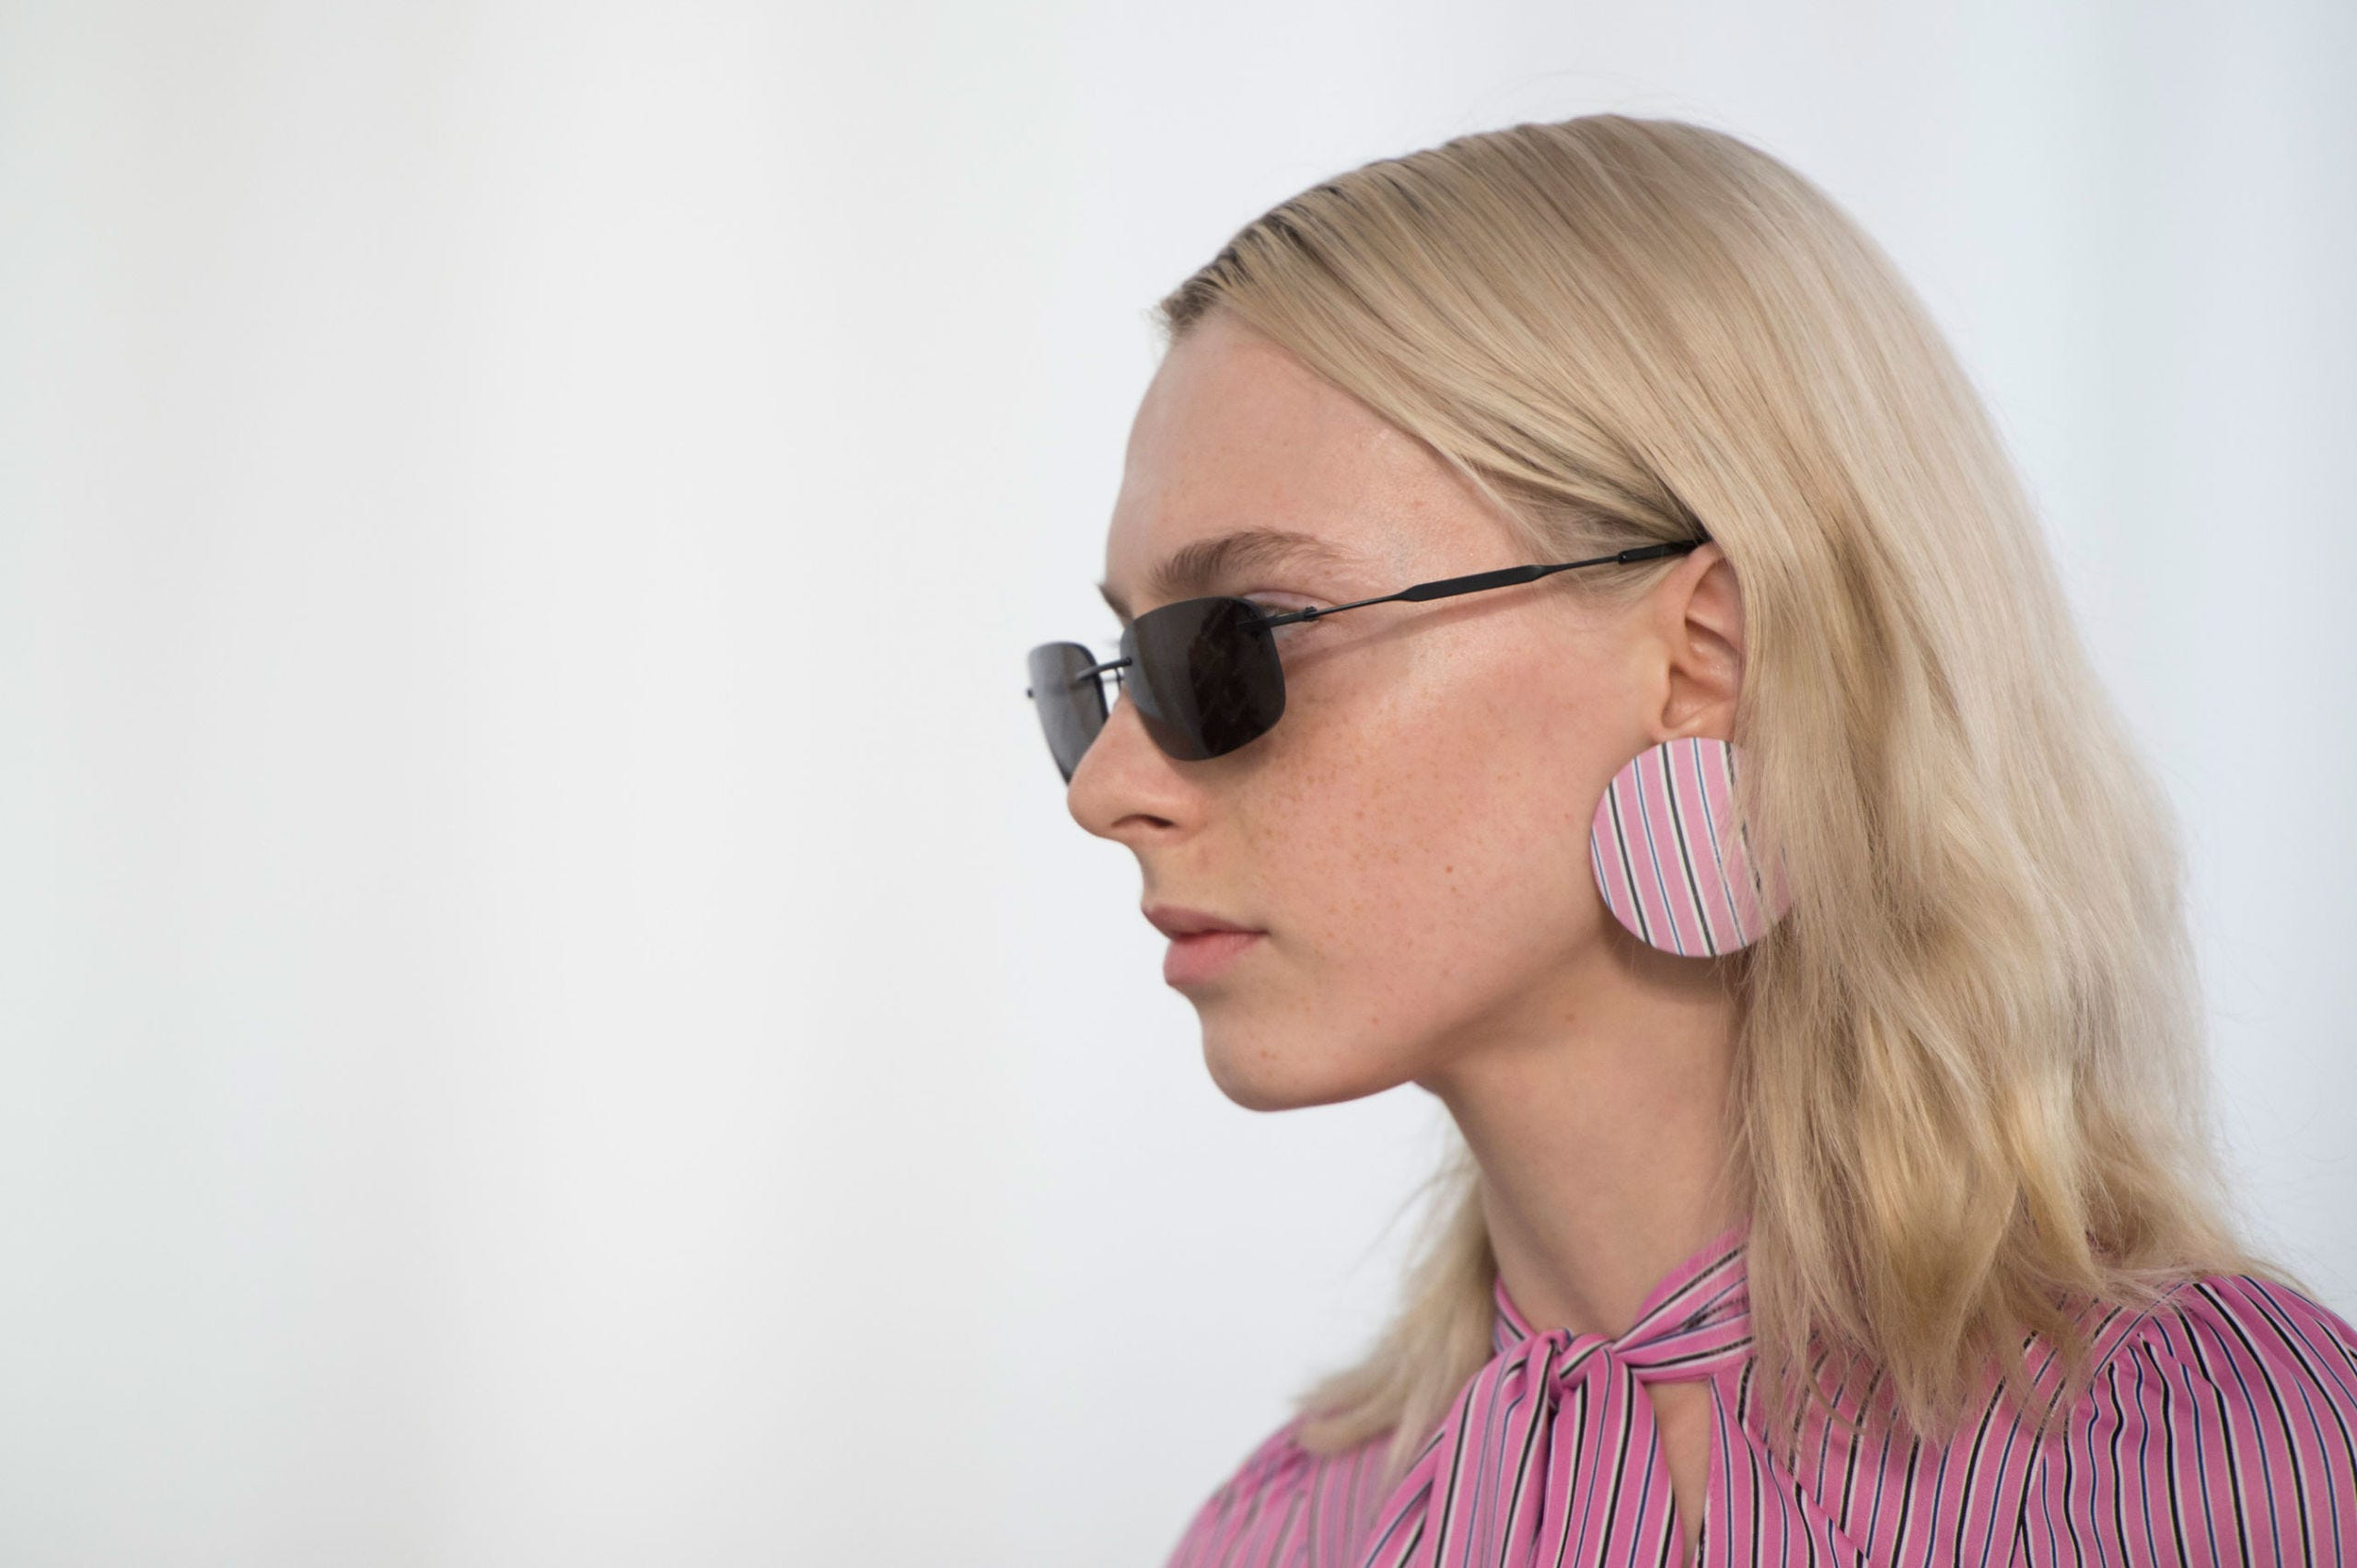 Eyewear, Earrings, Vision care, Cheek, Hairstyle, Chin, Audio equipment, Pink, Style, Fashion accessory,